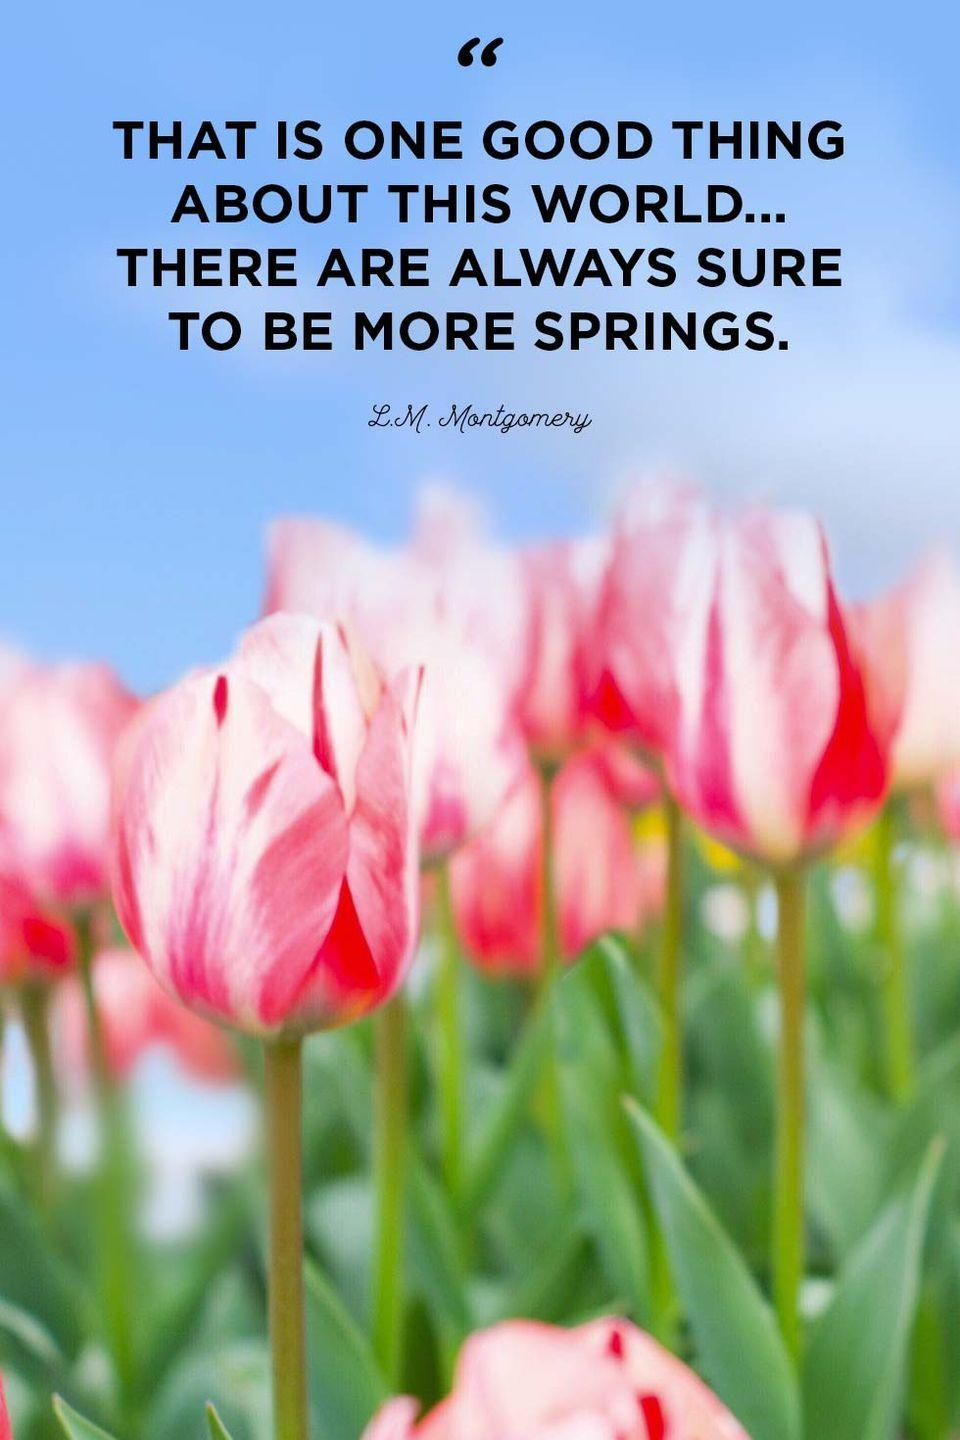 """<p>""""That is one good thing about this world...there are always sure to be more springs.""""</p>"""